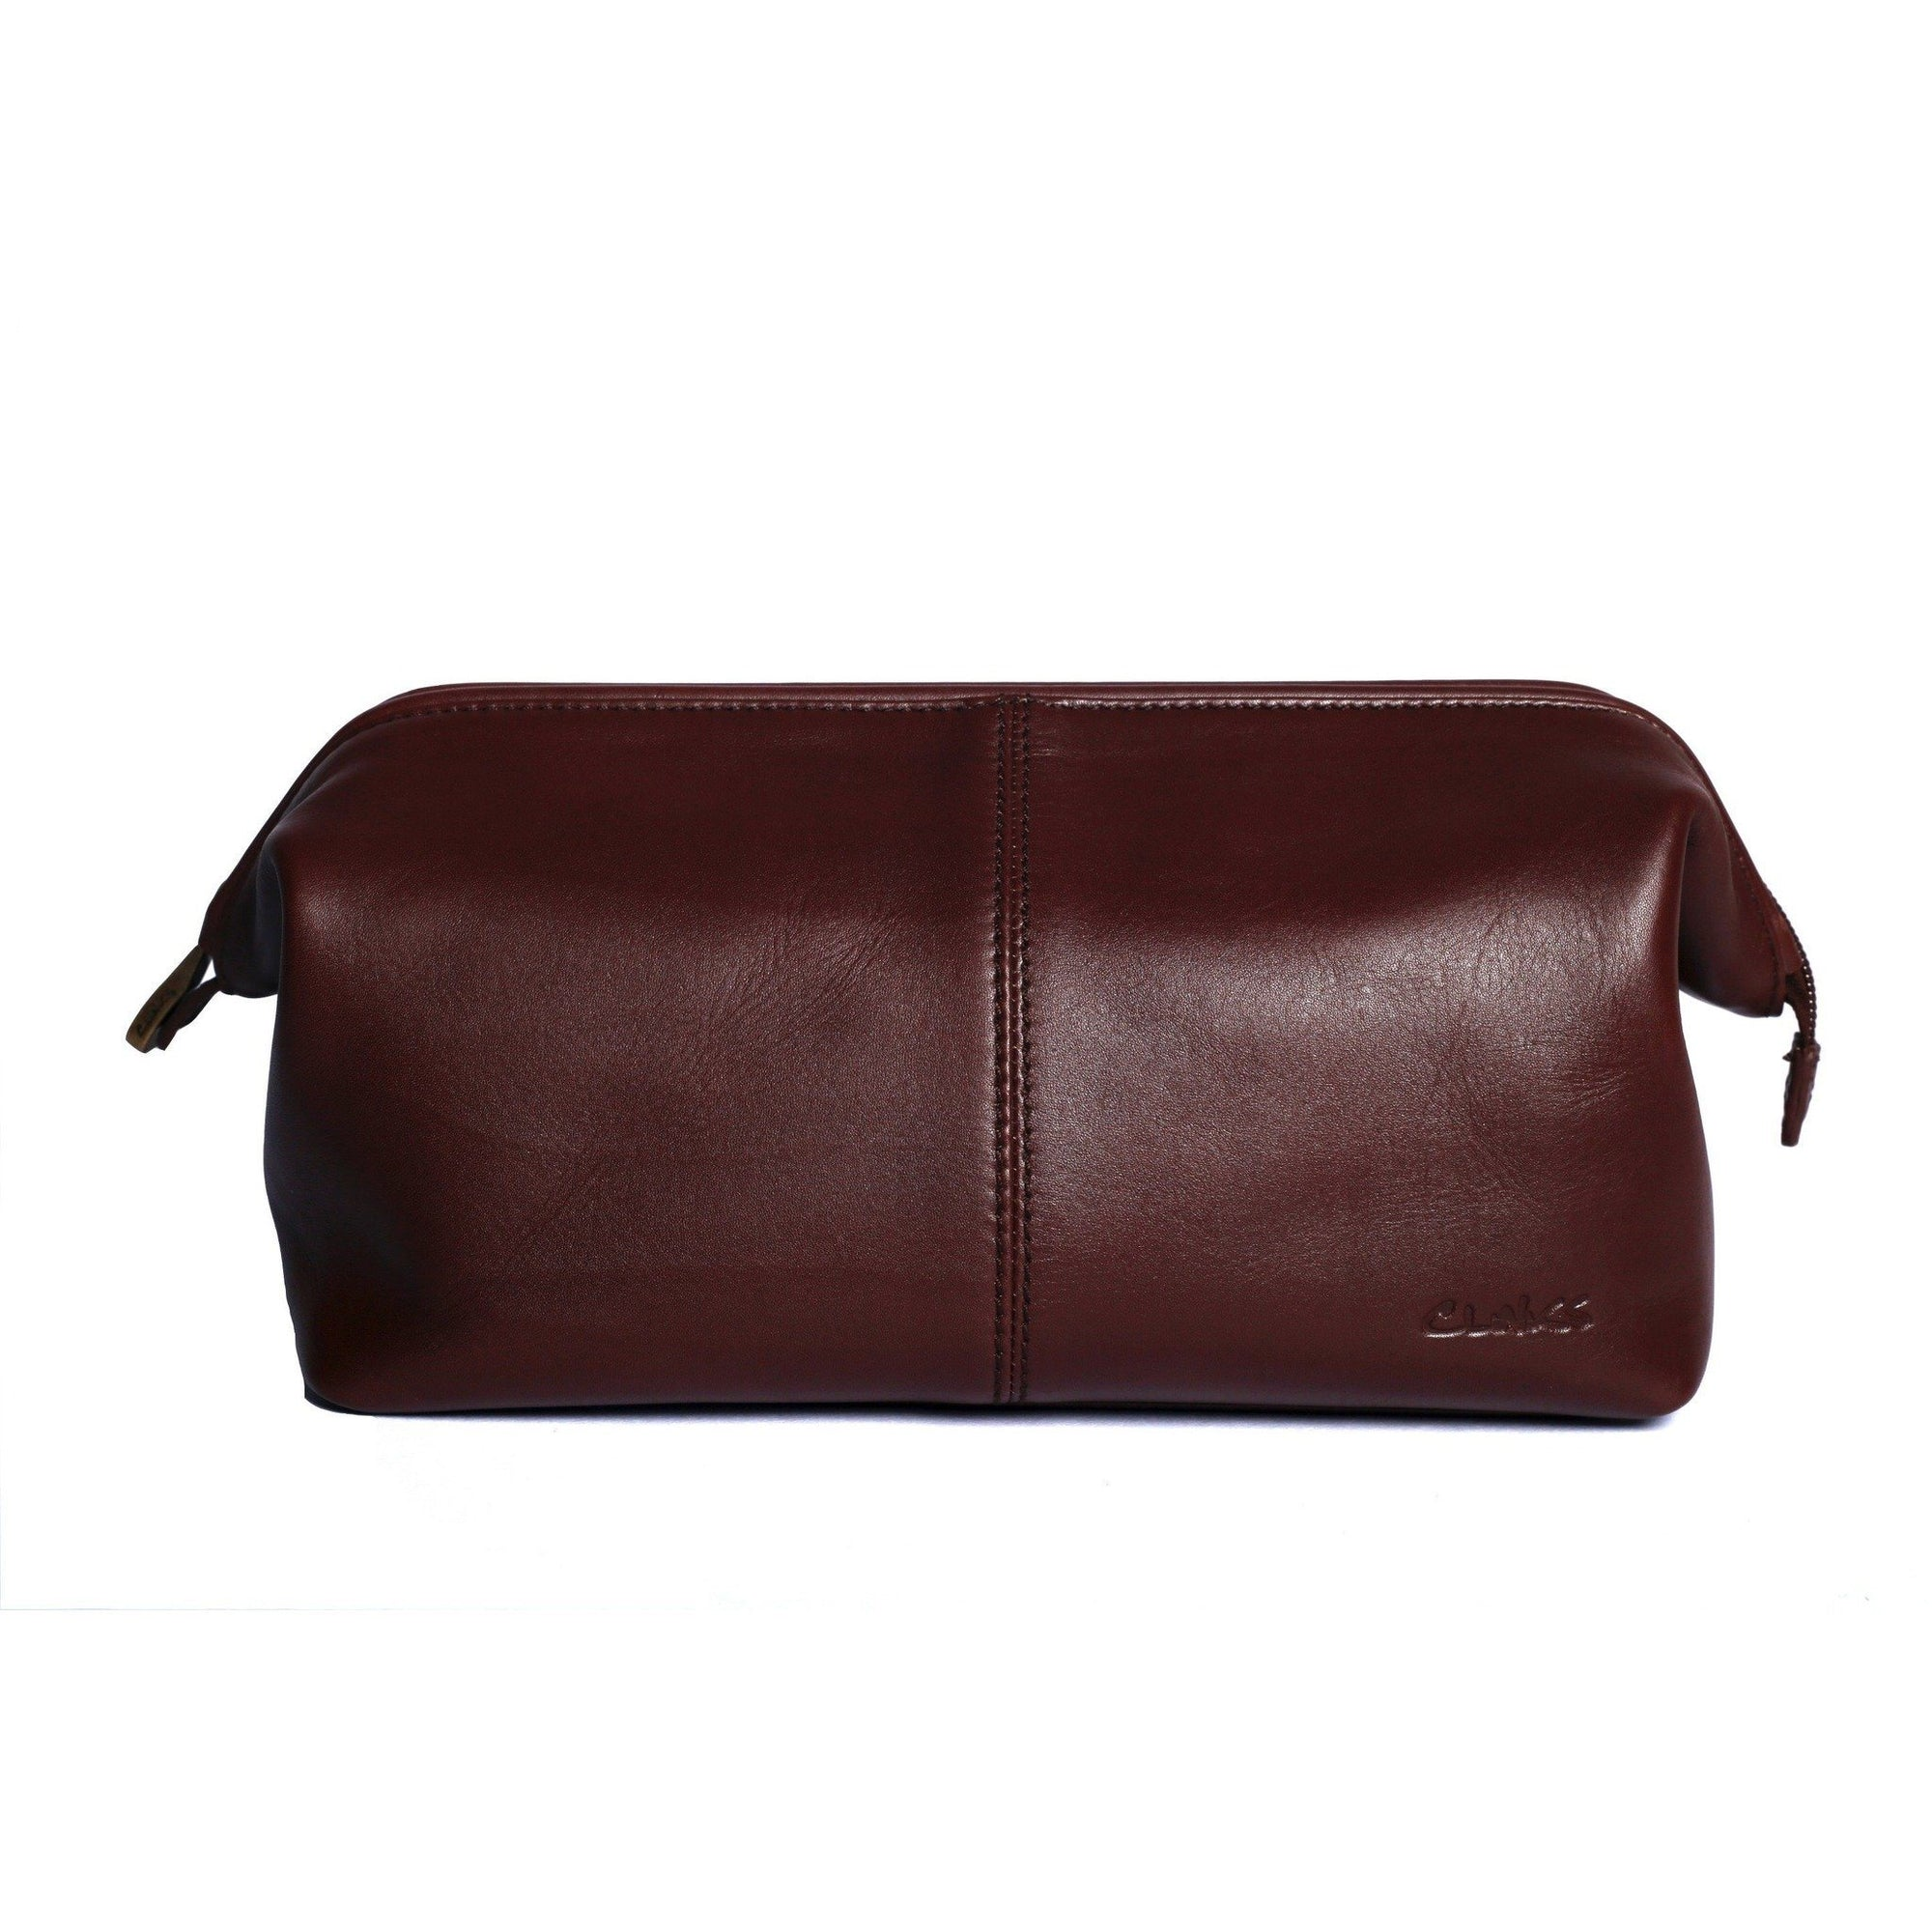 Large Leather Toiletry Dopp Bag in Dark Cognac, Leather Accessories, Cuffed.com.au, LB1021, $49.00